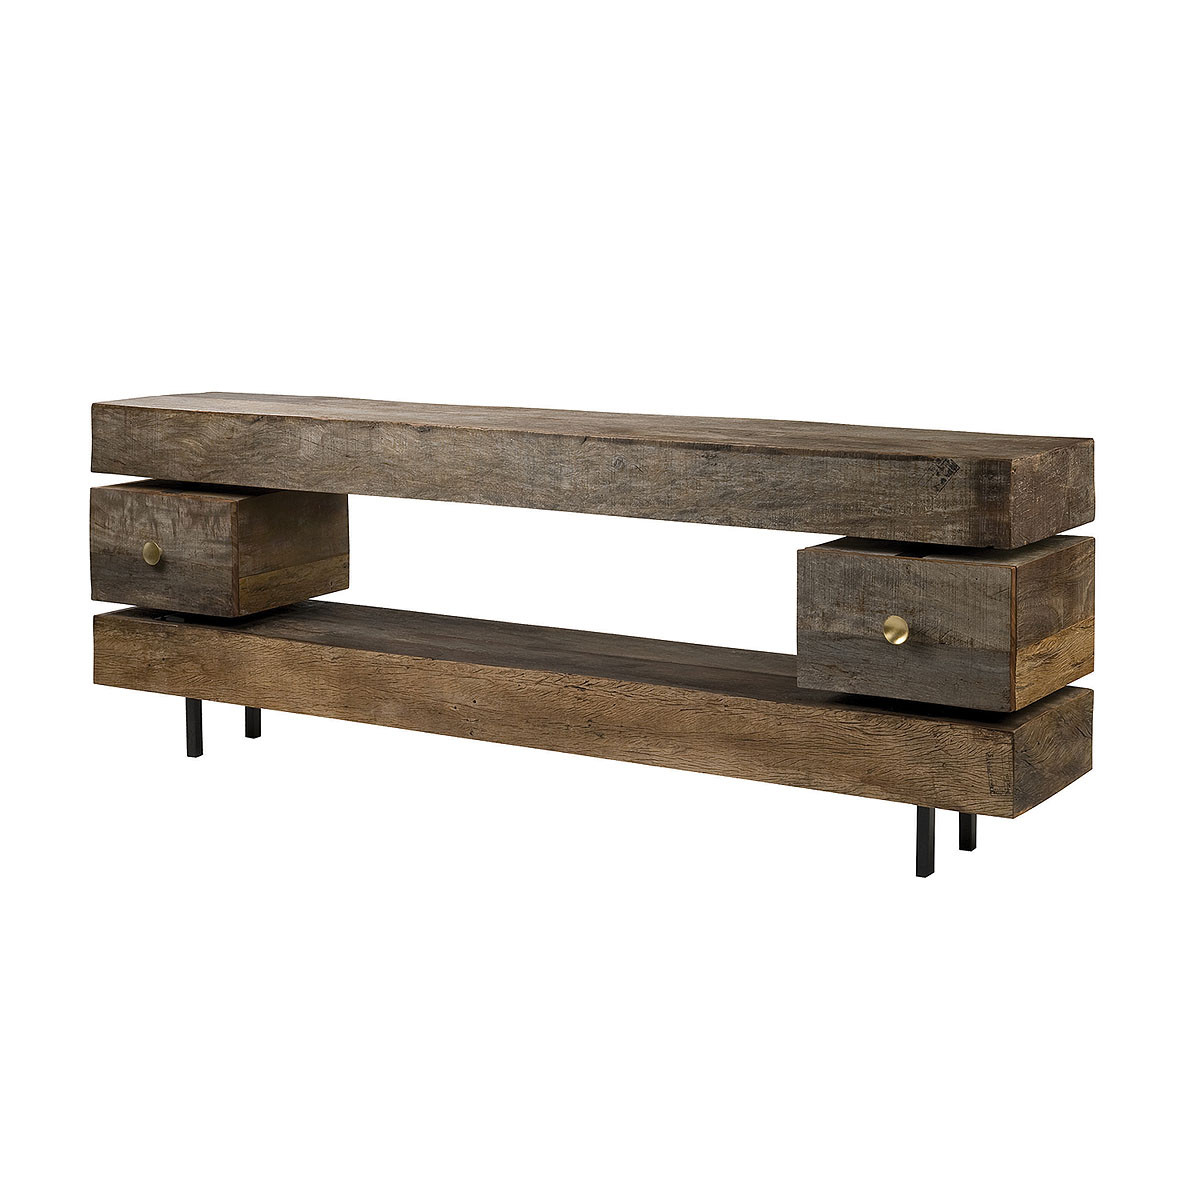 Reclaimed Wood Rustic Bina Dillon Console Table With